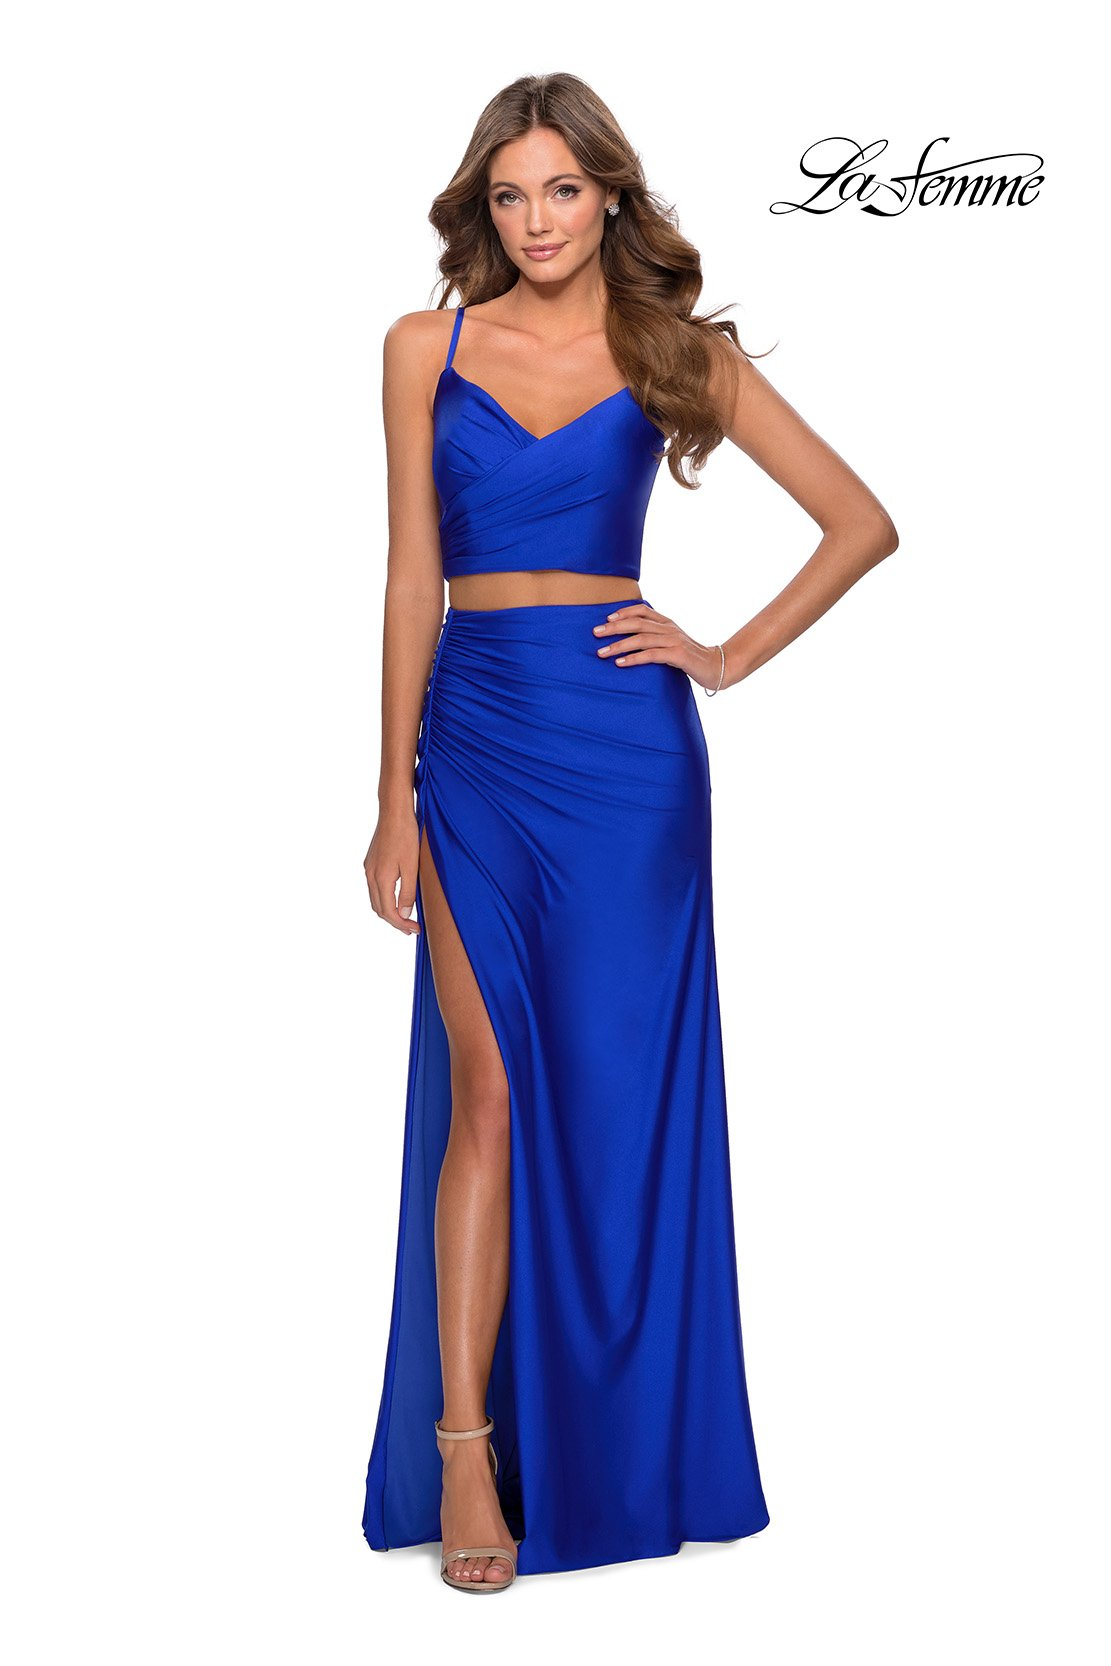 La Femme 28472 prom dress images.  La Femme 28472 is available in these colors: Neon Green, Neon Pink, Neon Yellow, Royal Blue.